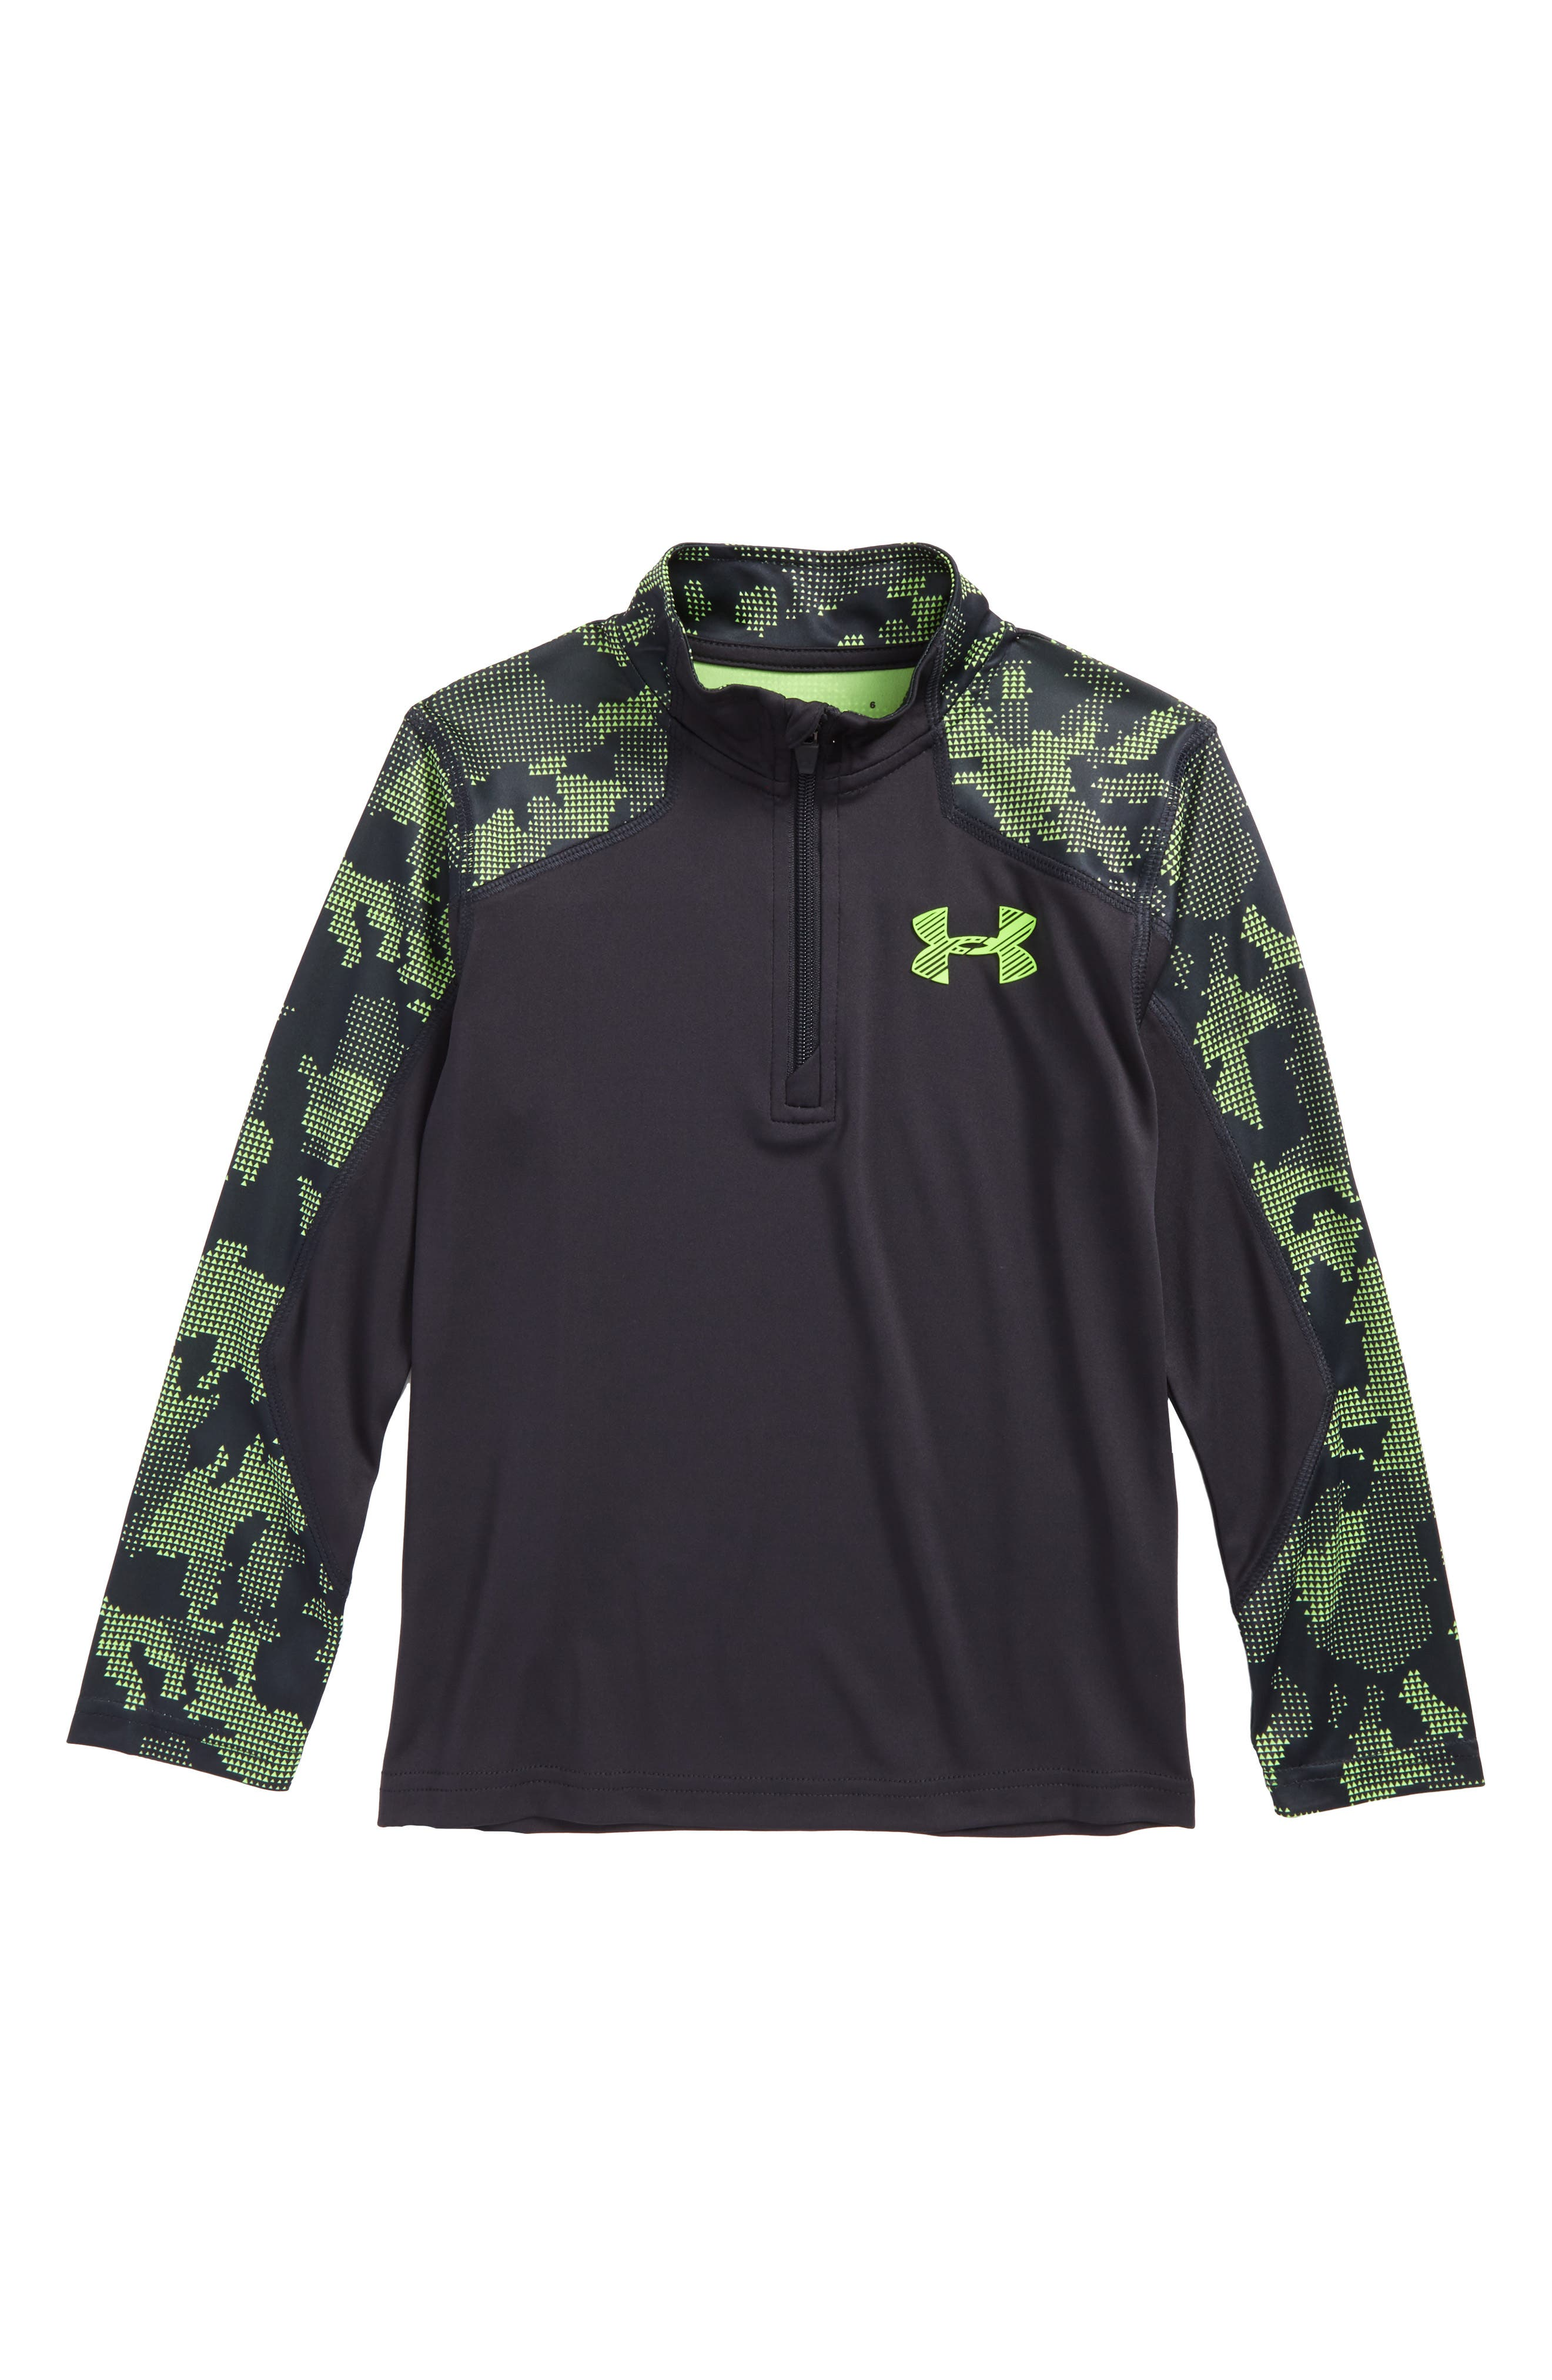 Main Image - Under Armour Utility Quarter Zip Pullover (Toddler Boys & Little Boys)